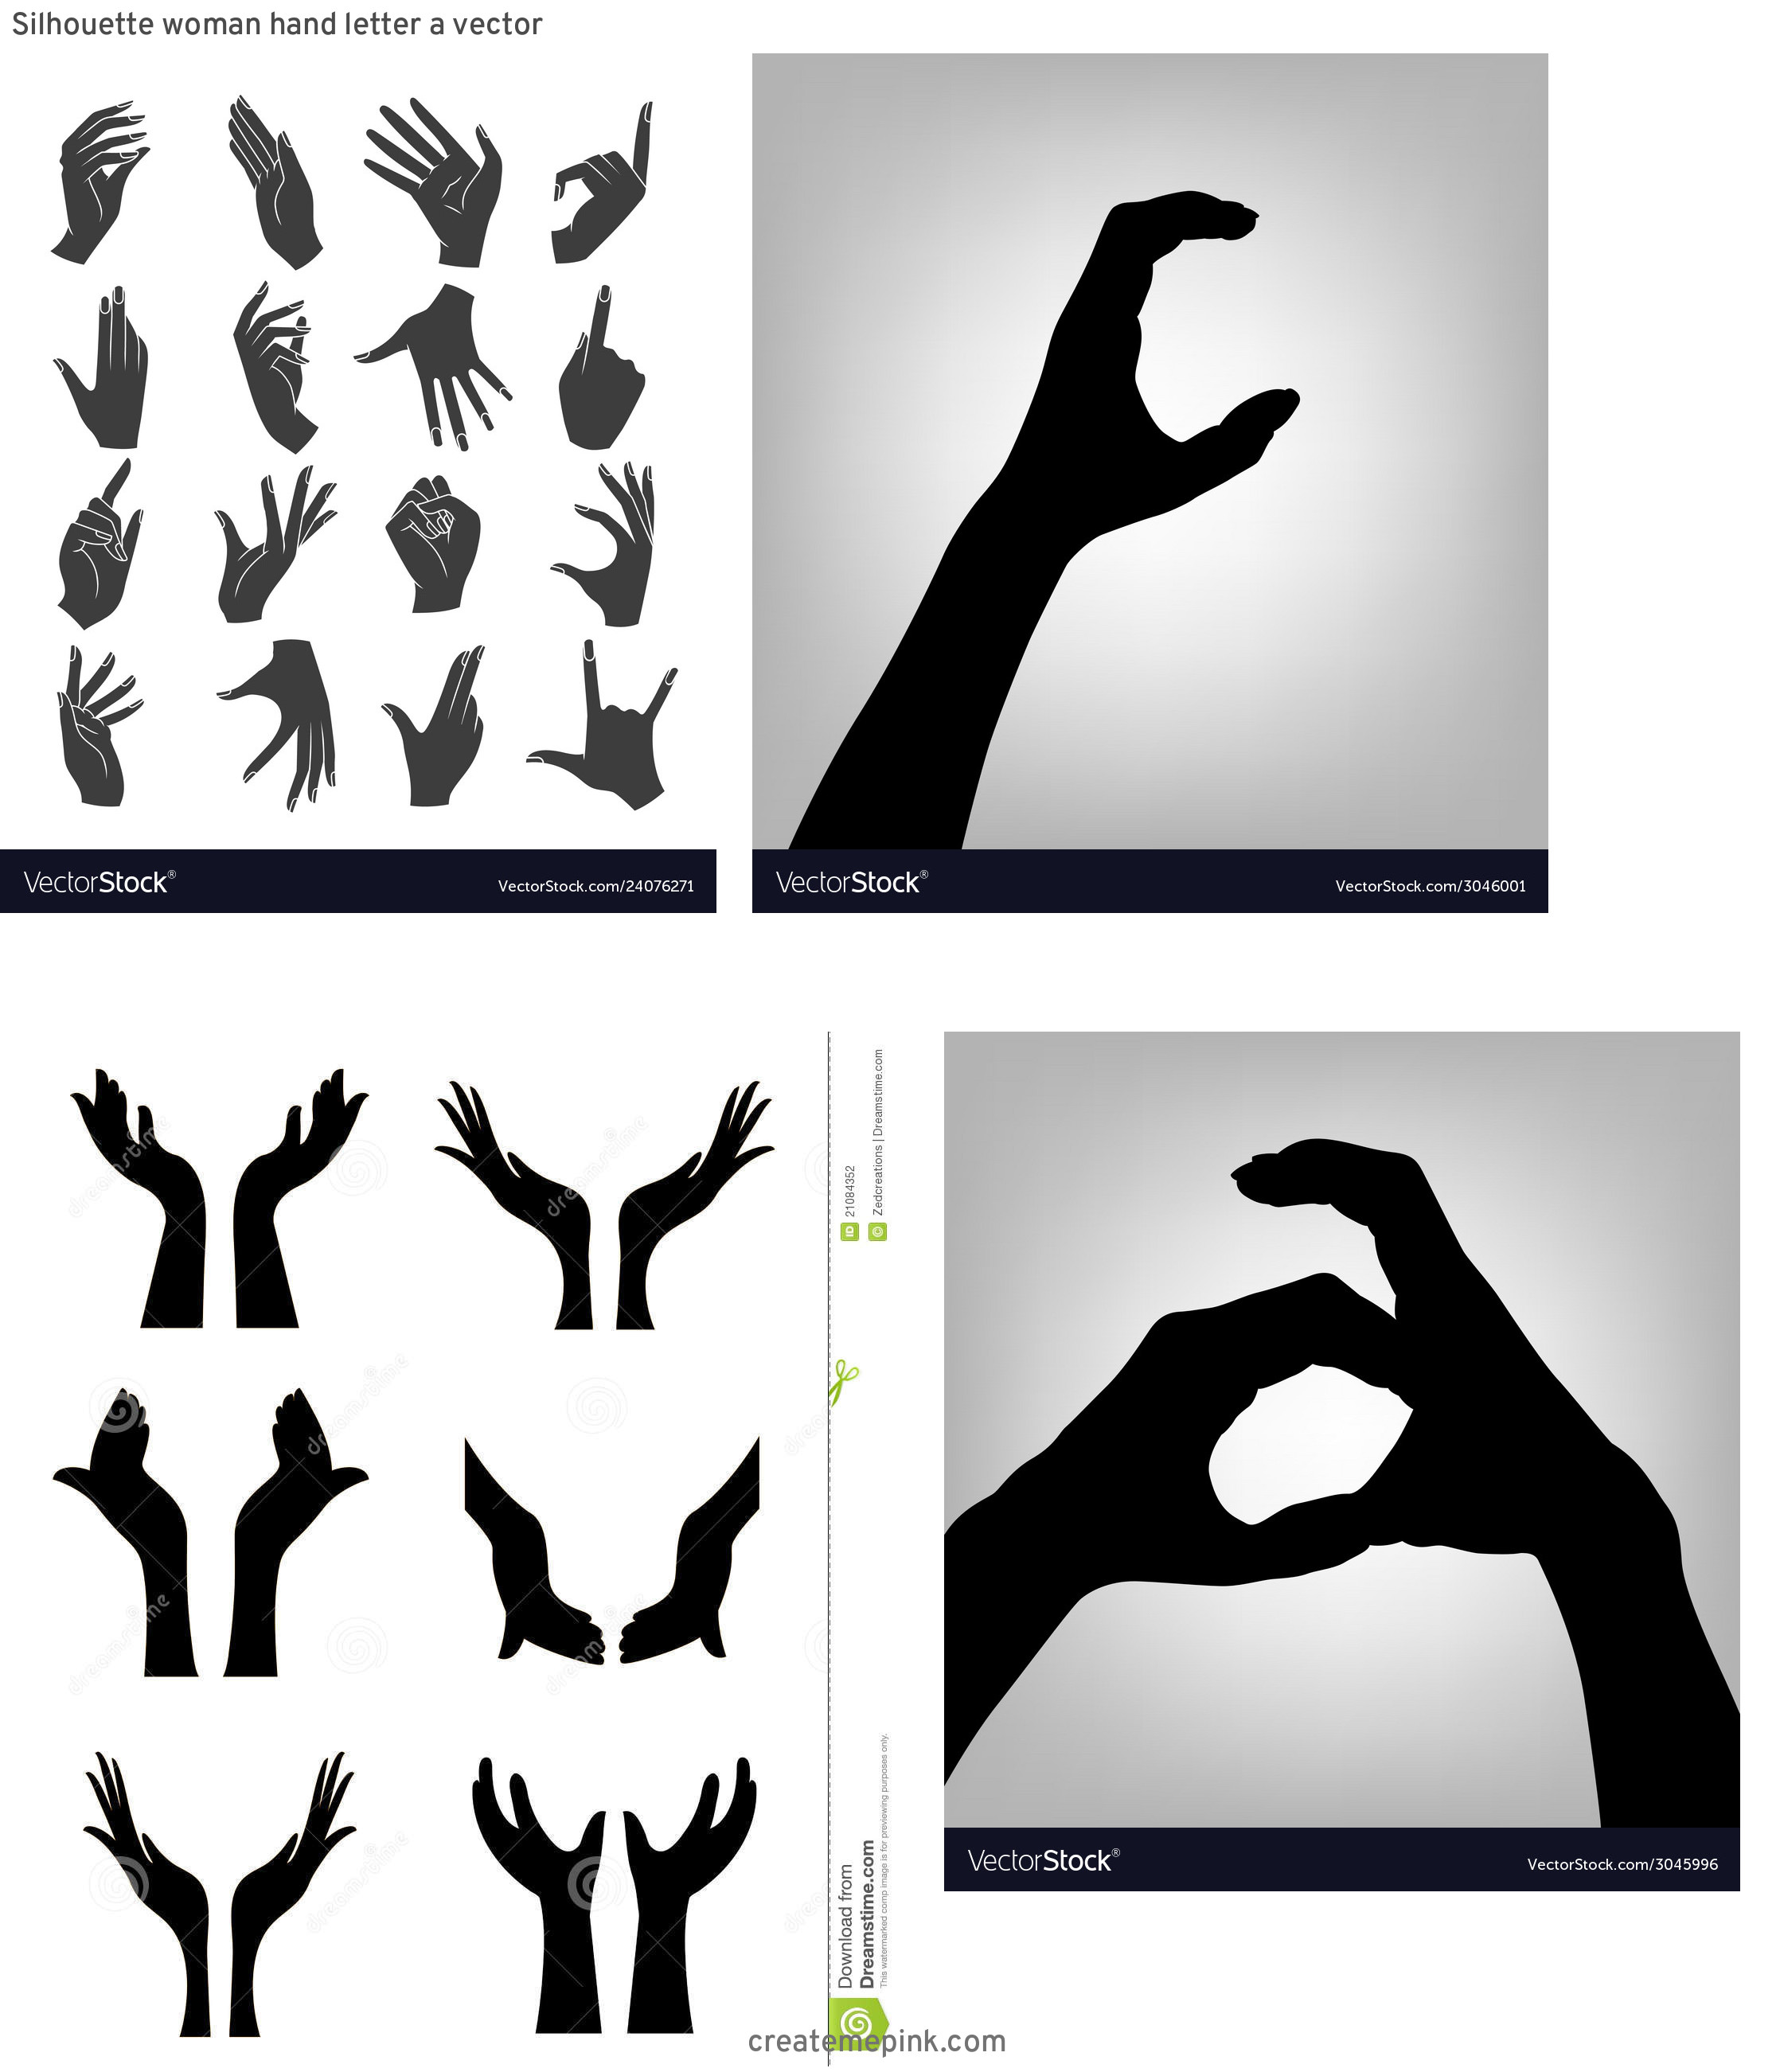 Female Hand Silhouette Vector: Silhouette Woman Hand Letter A Vector